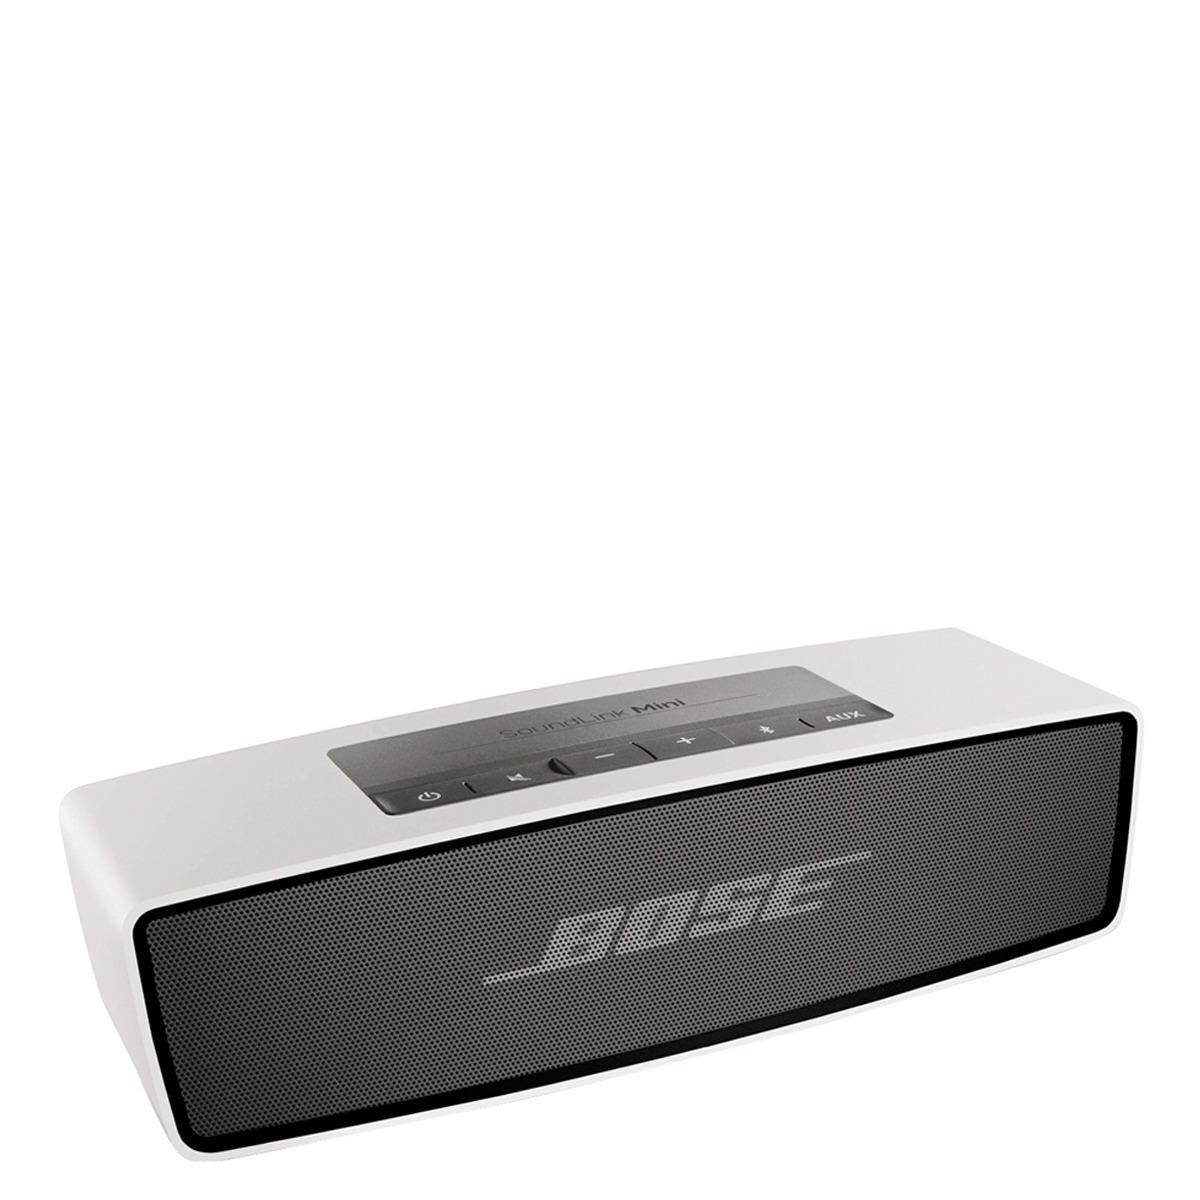 Altavoz Bose SoundLink Mini con Bluetooth